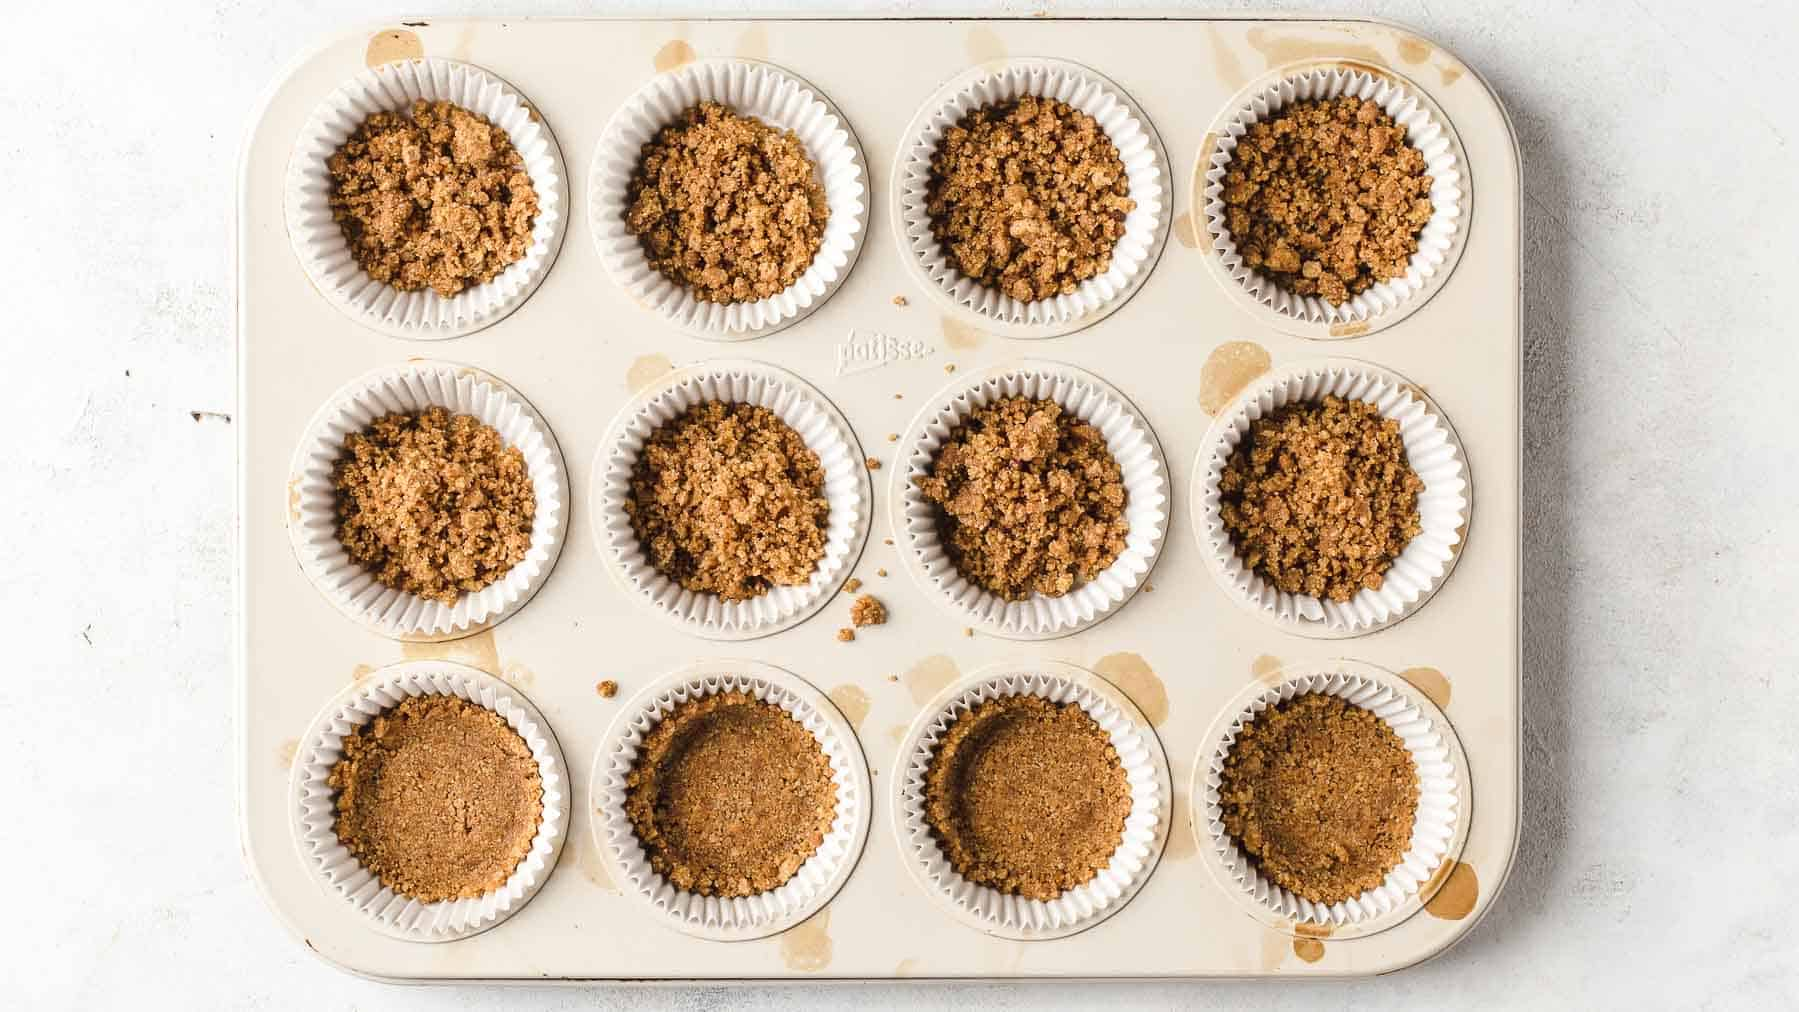 graham cracker crust in muffin pan